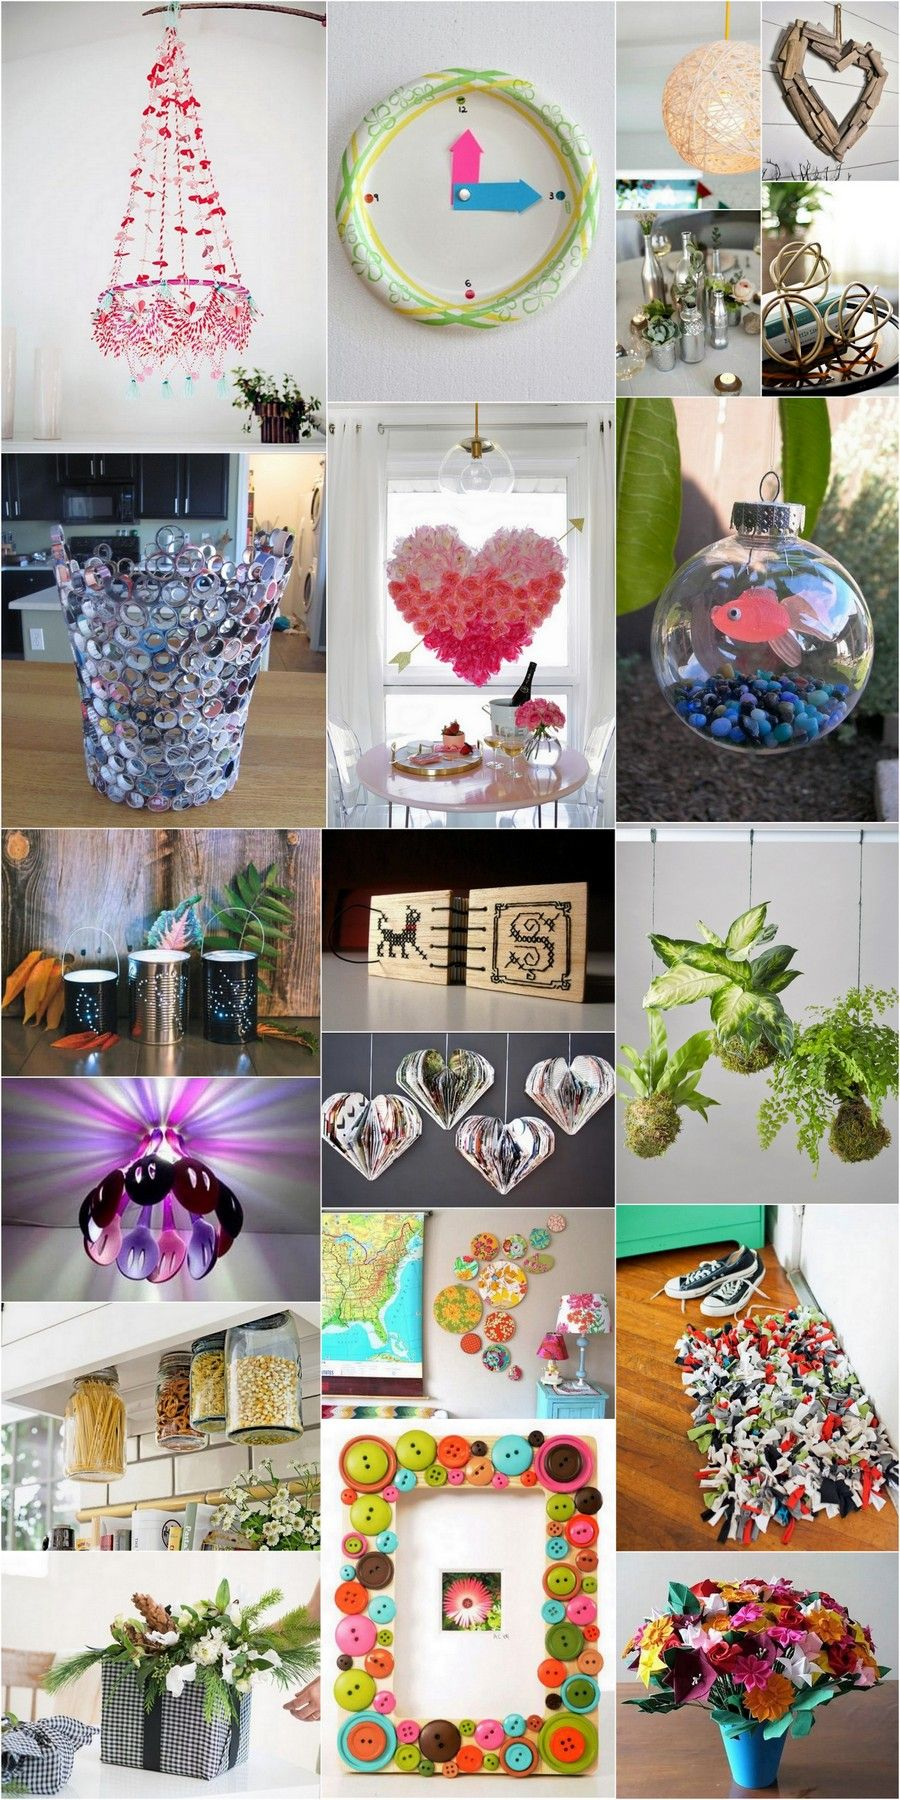 Creative Ideas To Re Purpose Old Stuff Diy Pinterest Diy